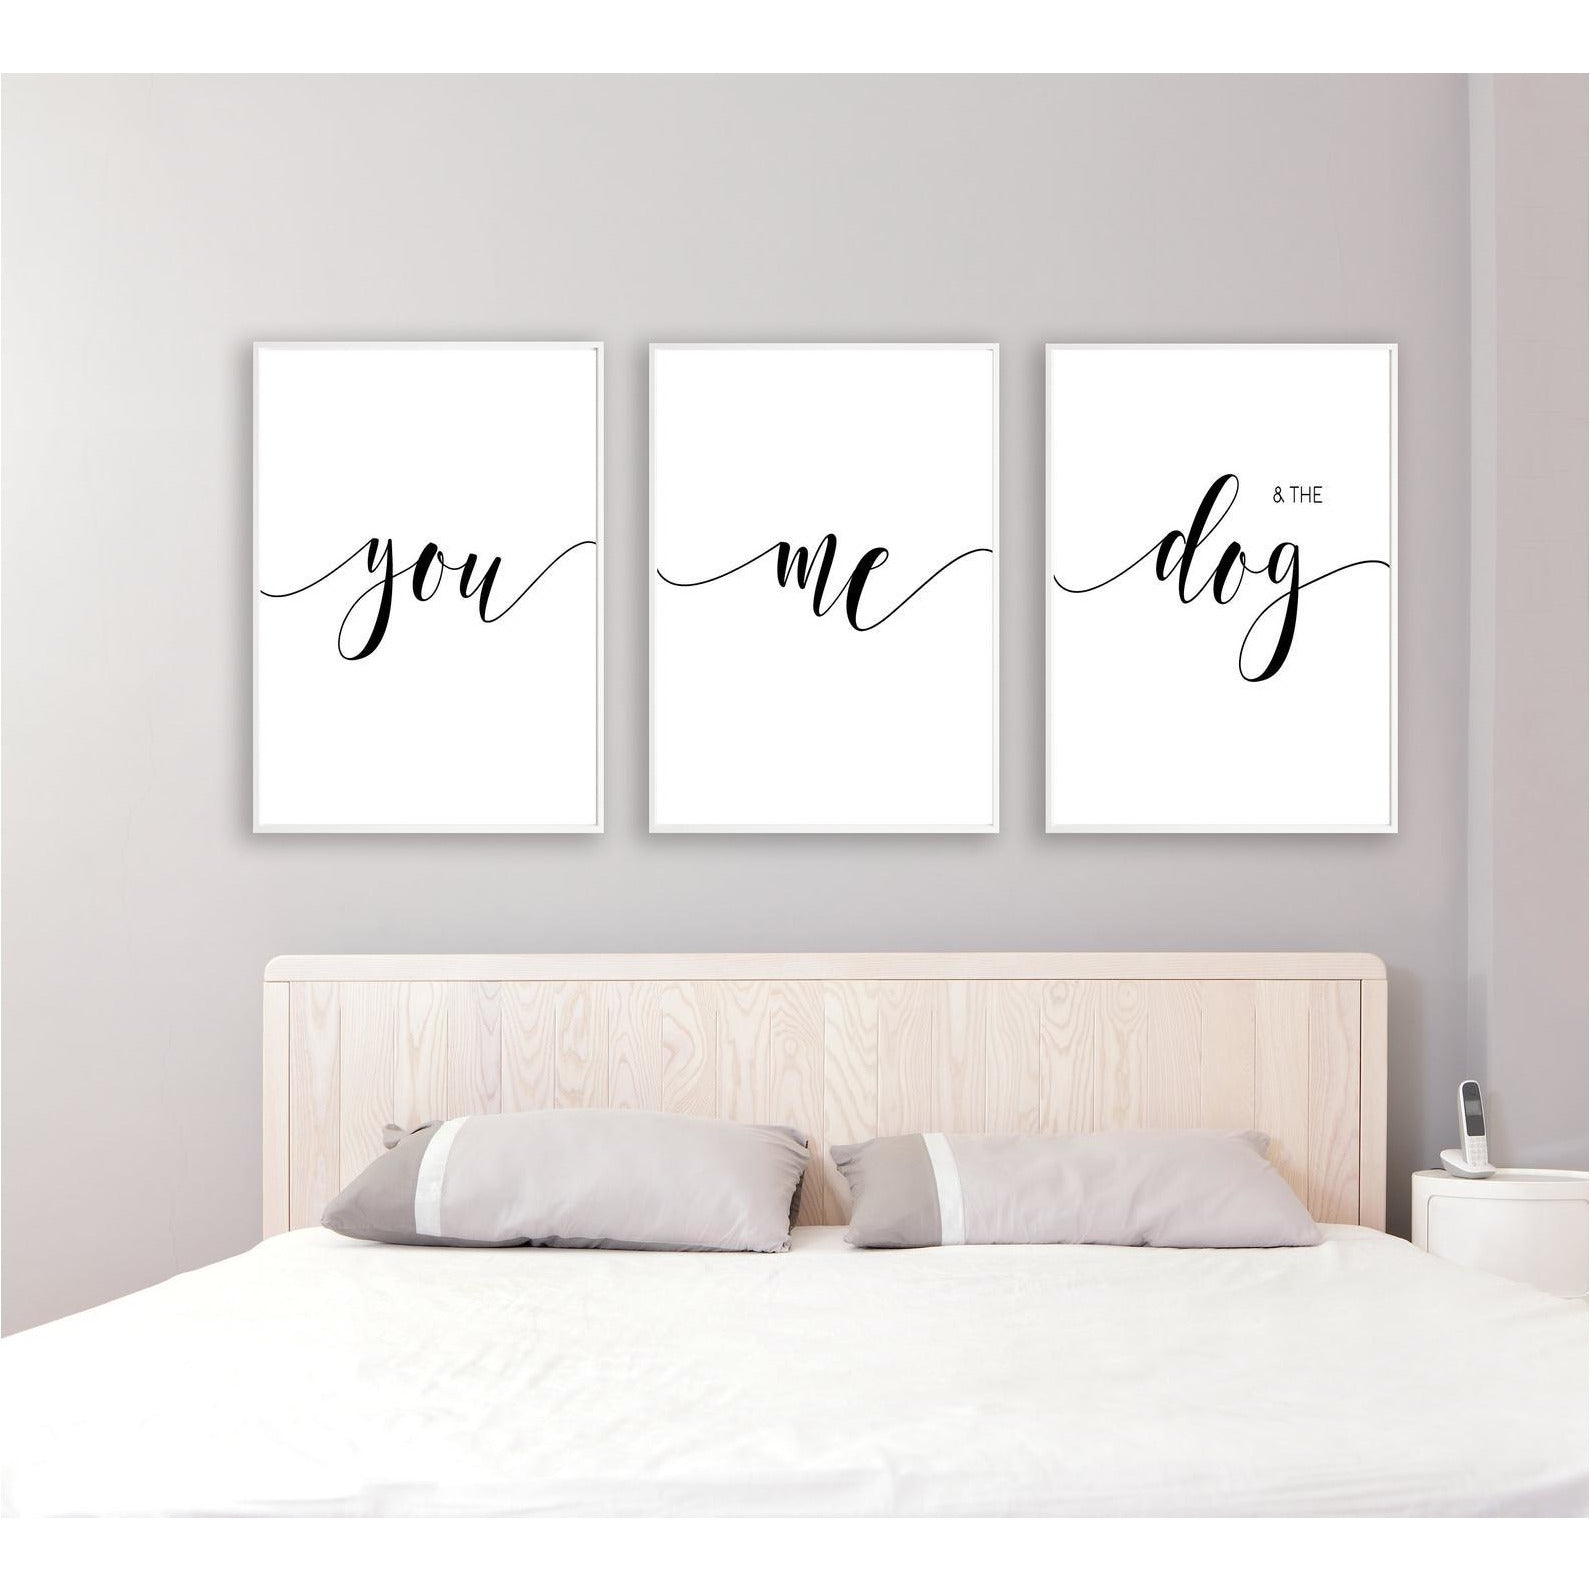 You, Me and the Dog freeshipping - Beautiful Spaces Store